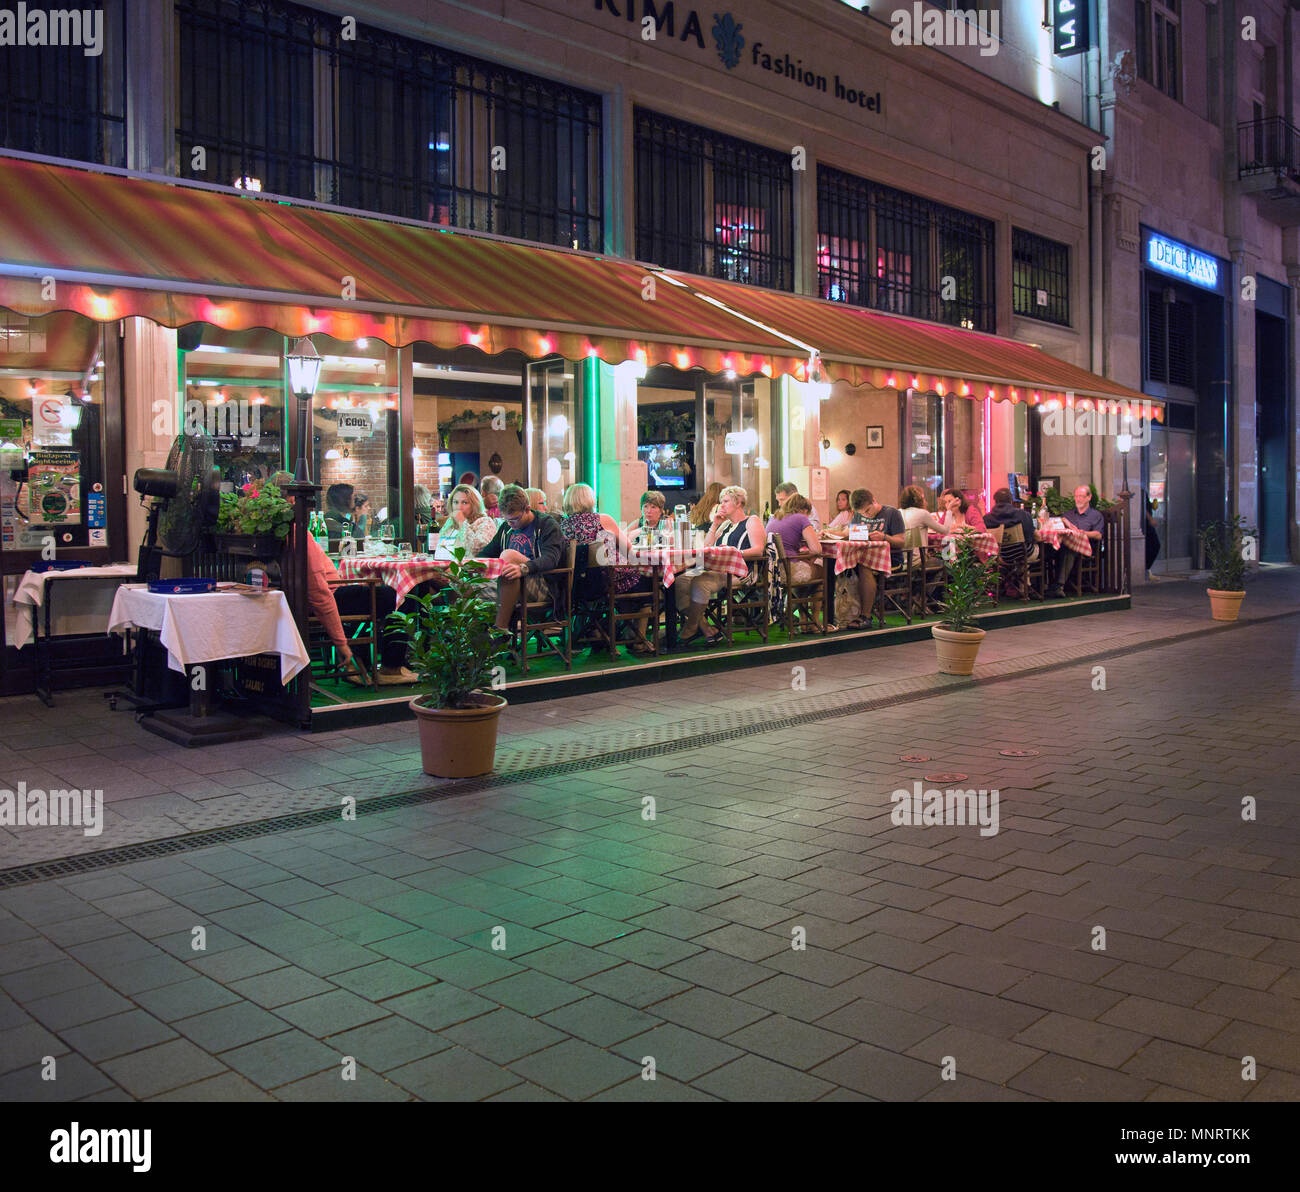 pedestrian area stockfotos pedestrian area bilder alamy. Black Bedroom Furniture Sets. Home Design Ideas